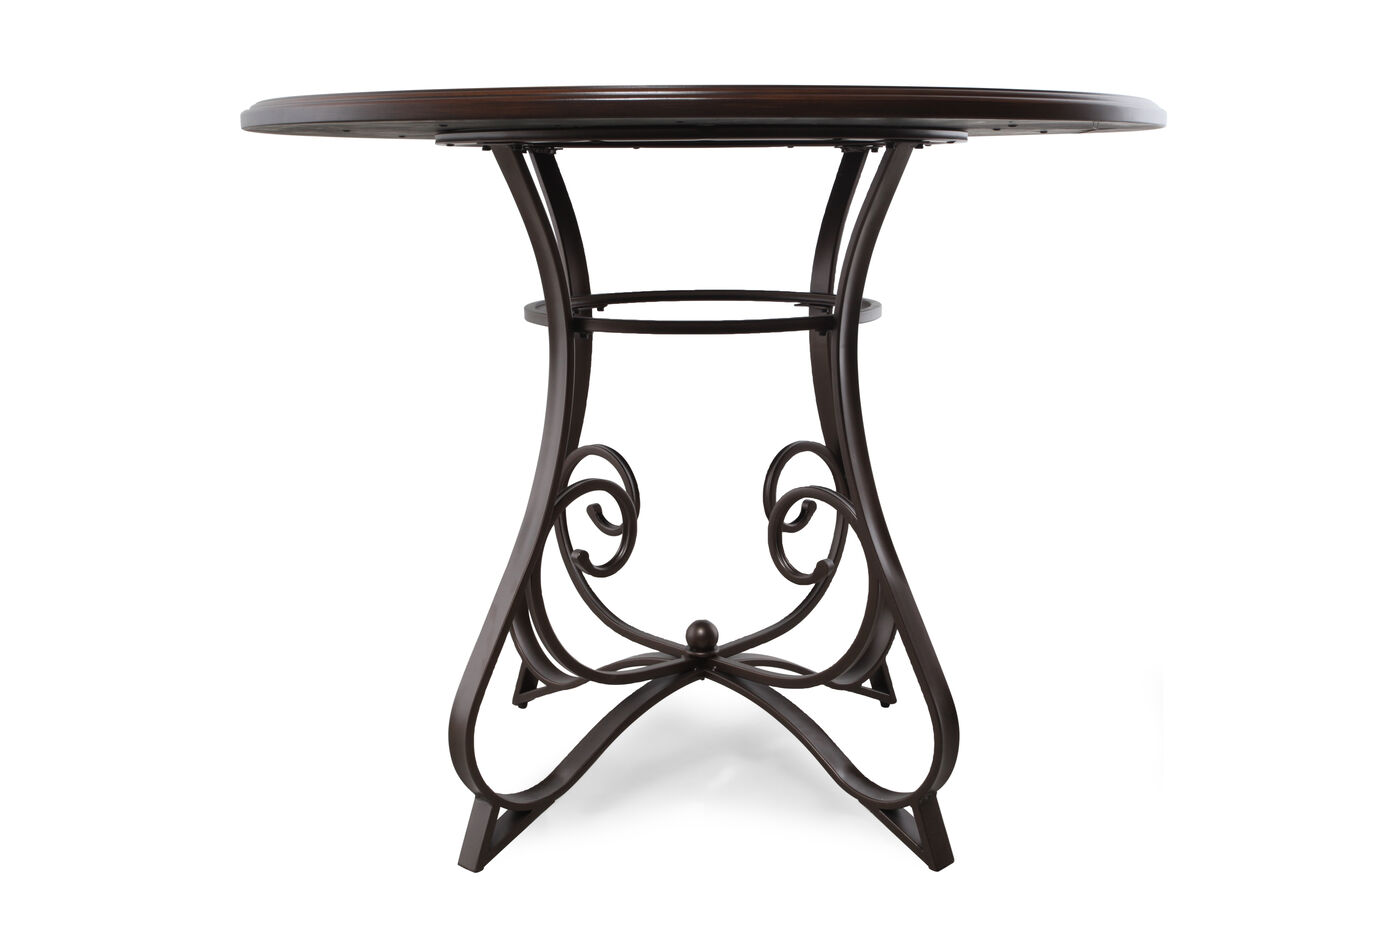 Ashley Hopstand Counter Height Table Mathis Brothers  : IMG4407 from www.mathisbrothers.com size 1400 x 933 jpeg 66kB